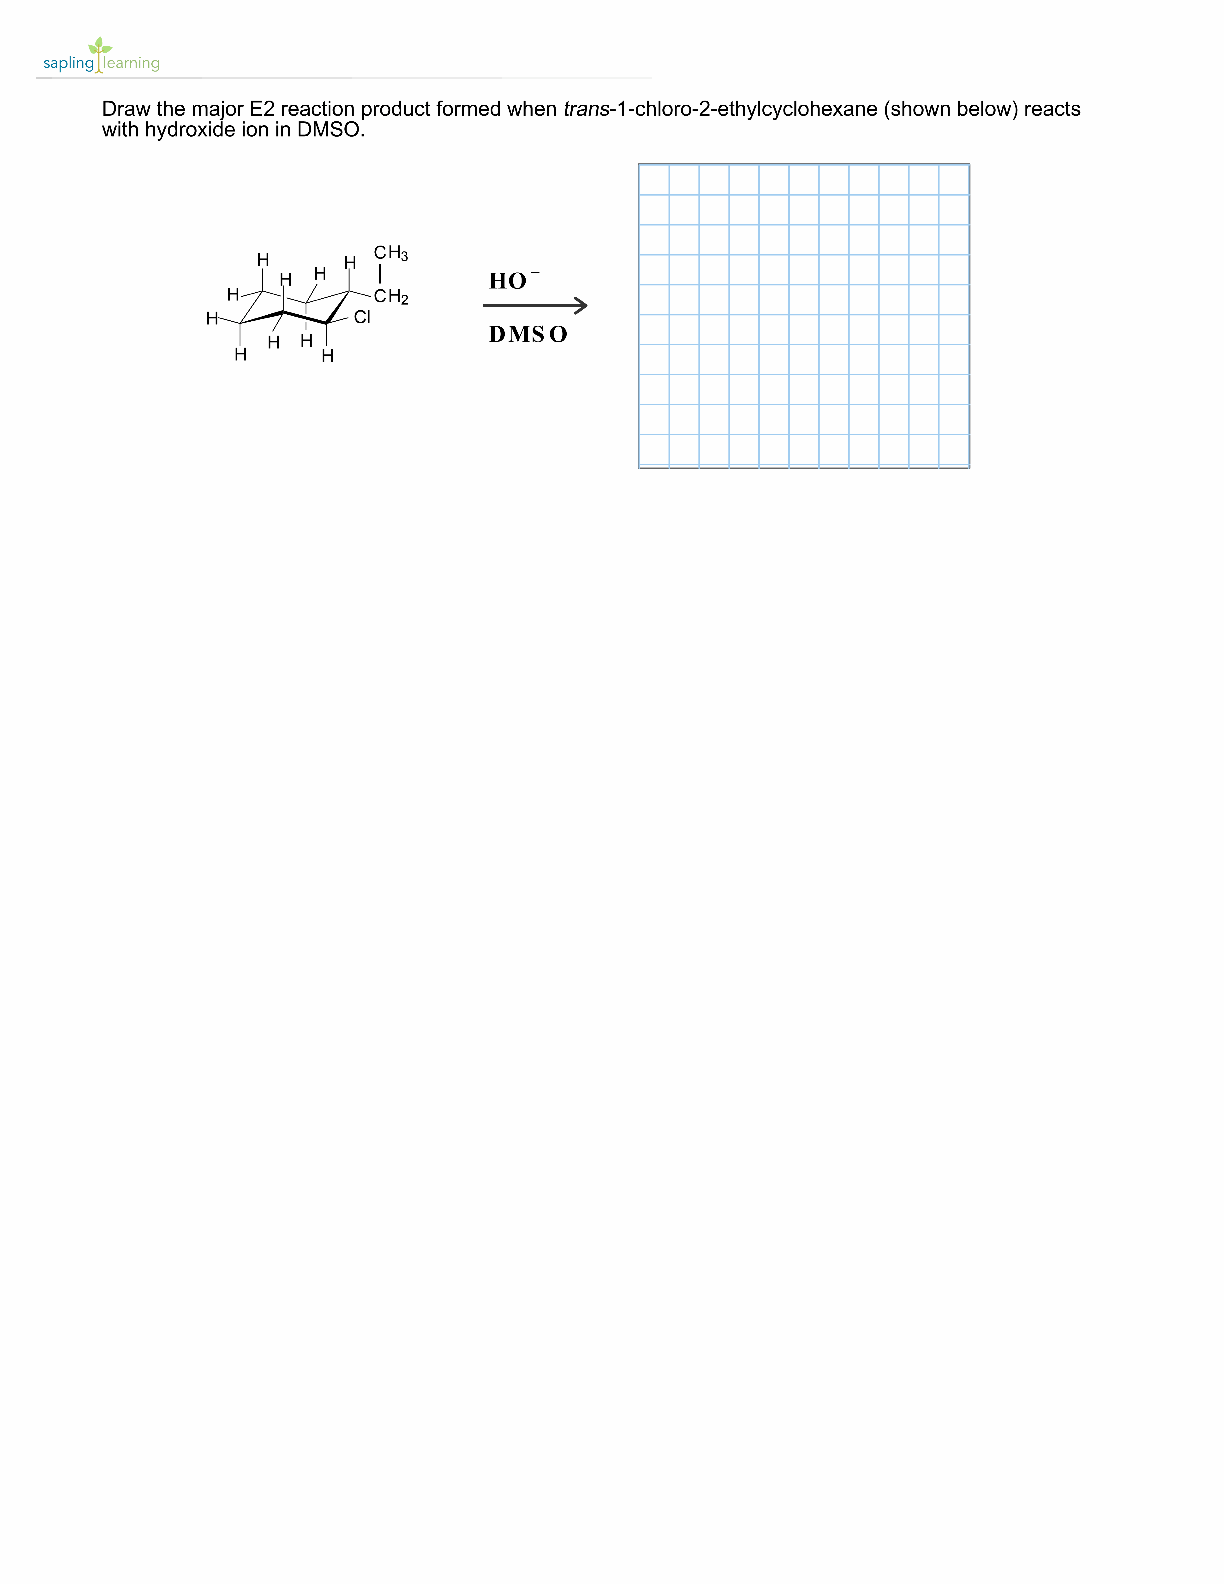 Draw the major E2 reaction product formed when tra